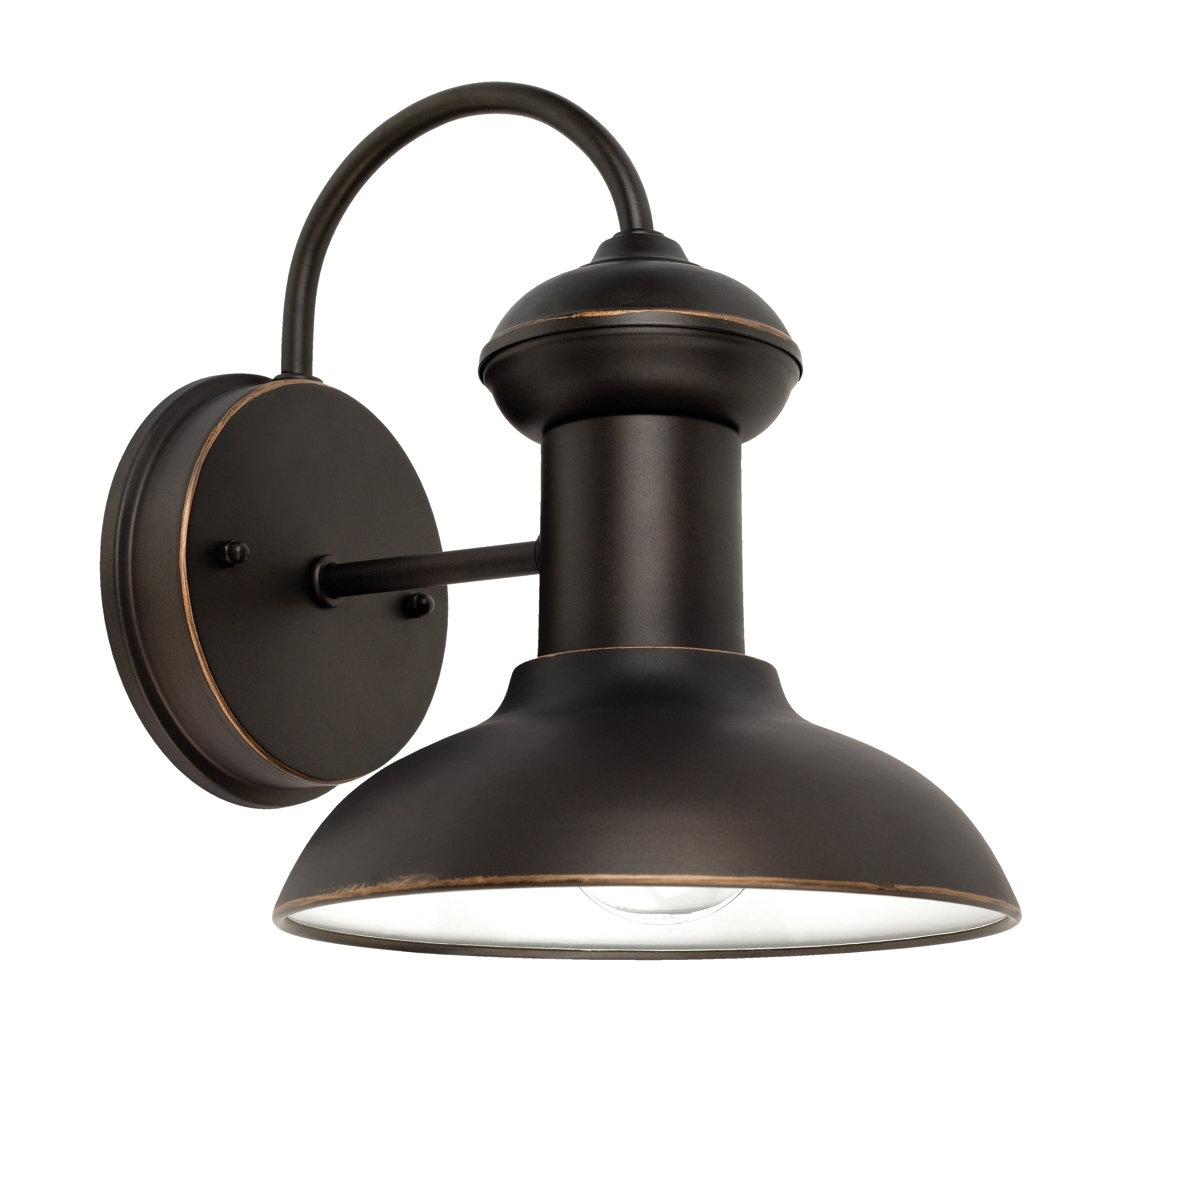 Hampton Bay Outdoor Lighting At Wayfair In Best And Newest Outdoor Wall Lighting & Barn Lights You'll Love (View 3 of 20)